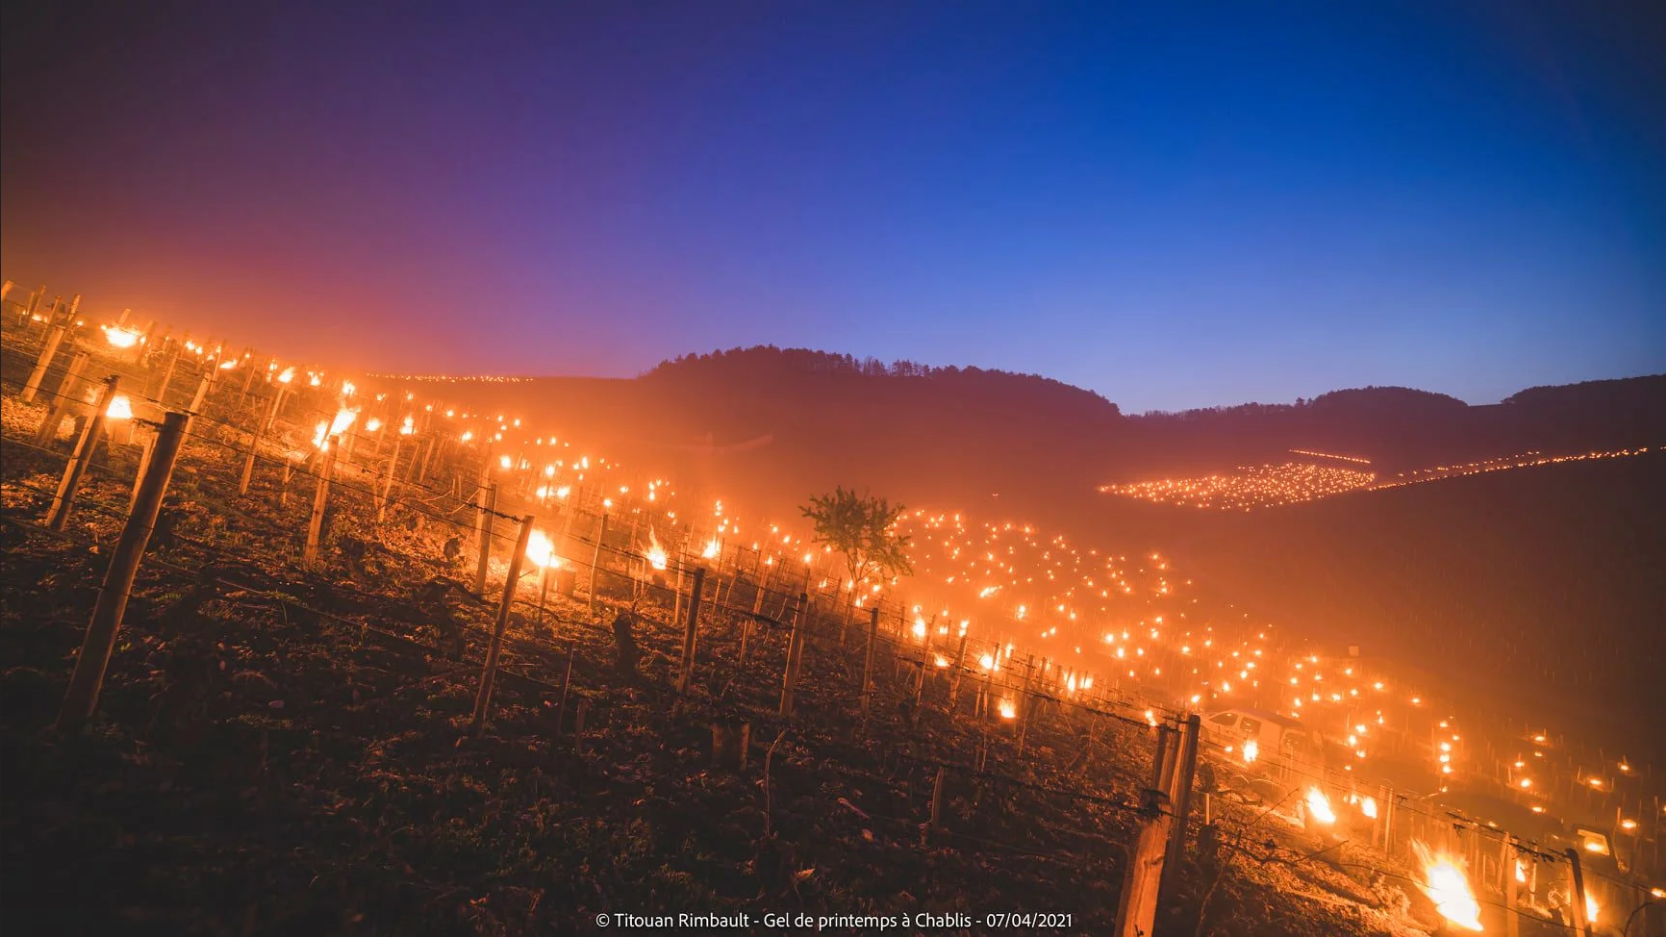 Battling frosts with fire in Auxerre, Chablis (Burgundy) - photo by Titouan Rimbault